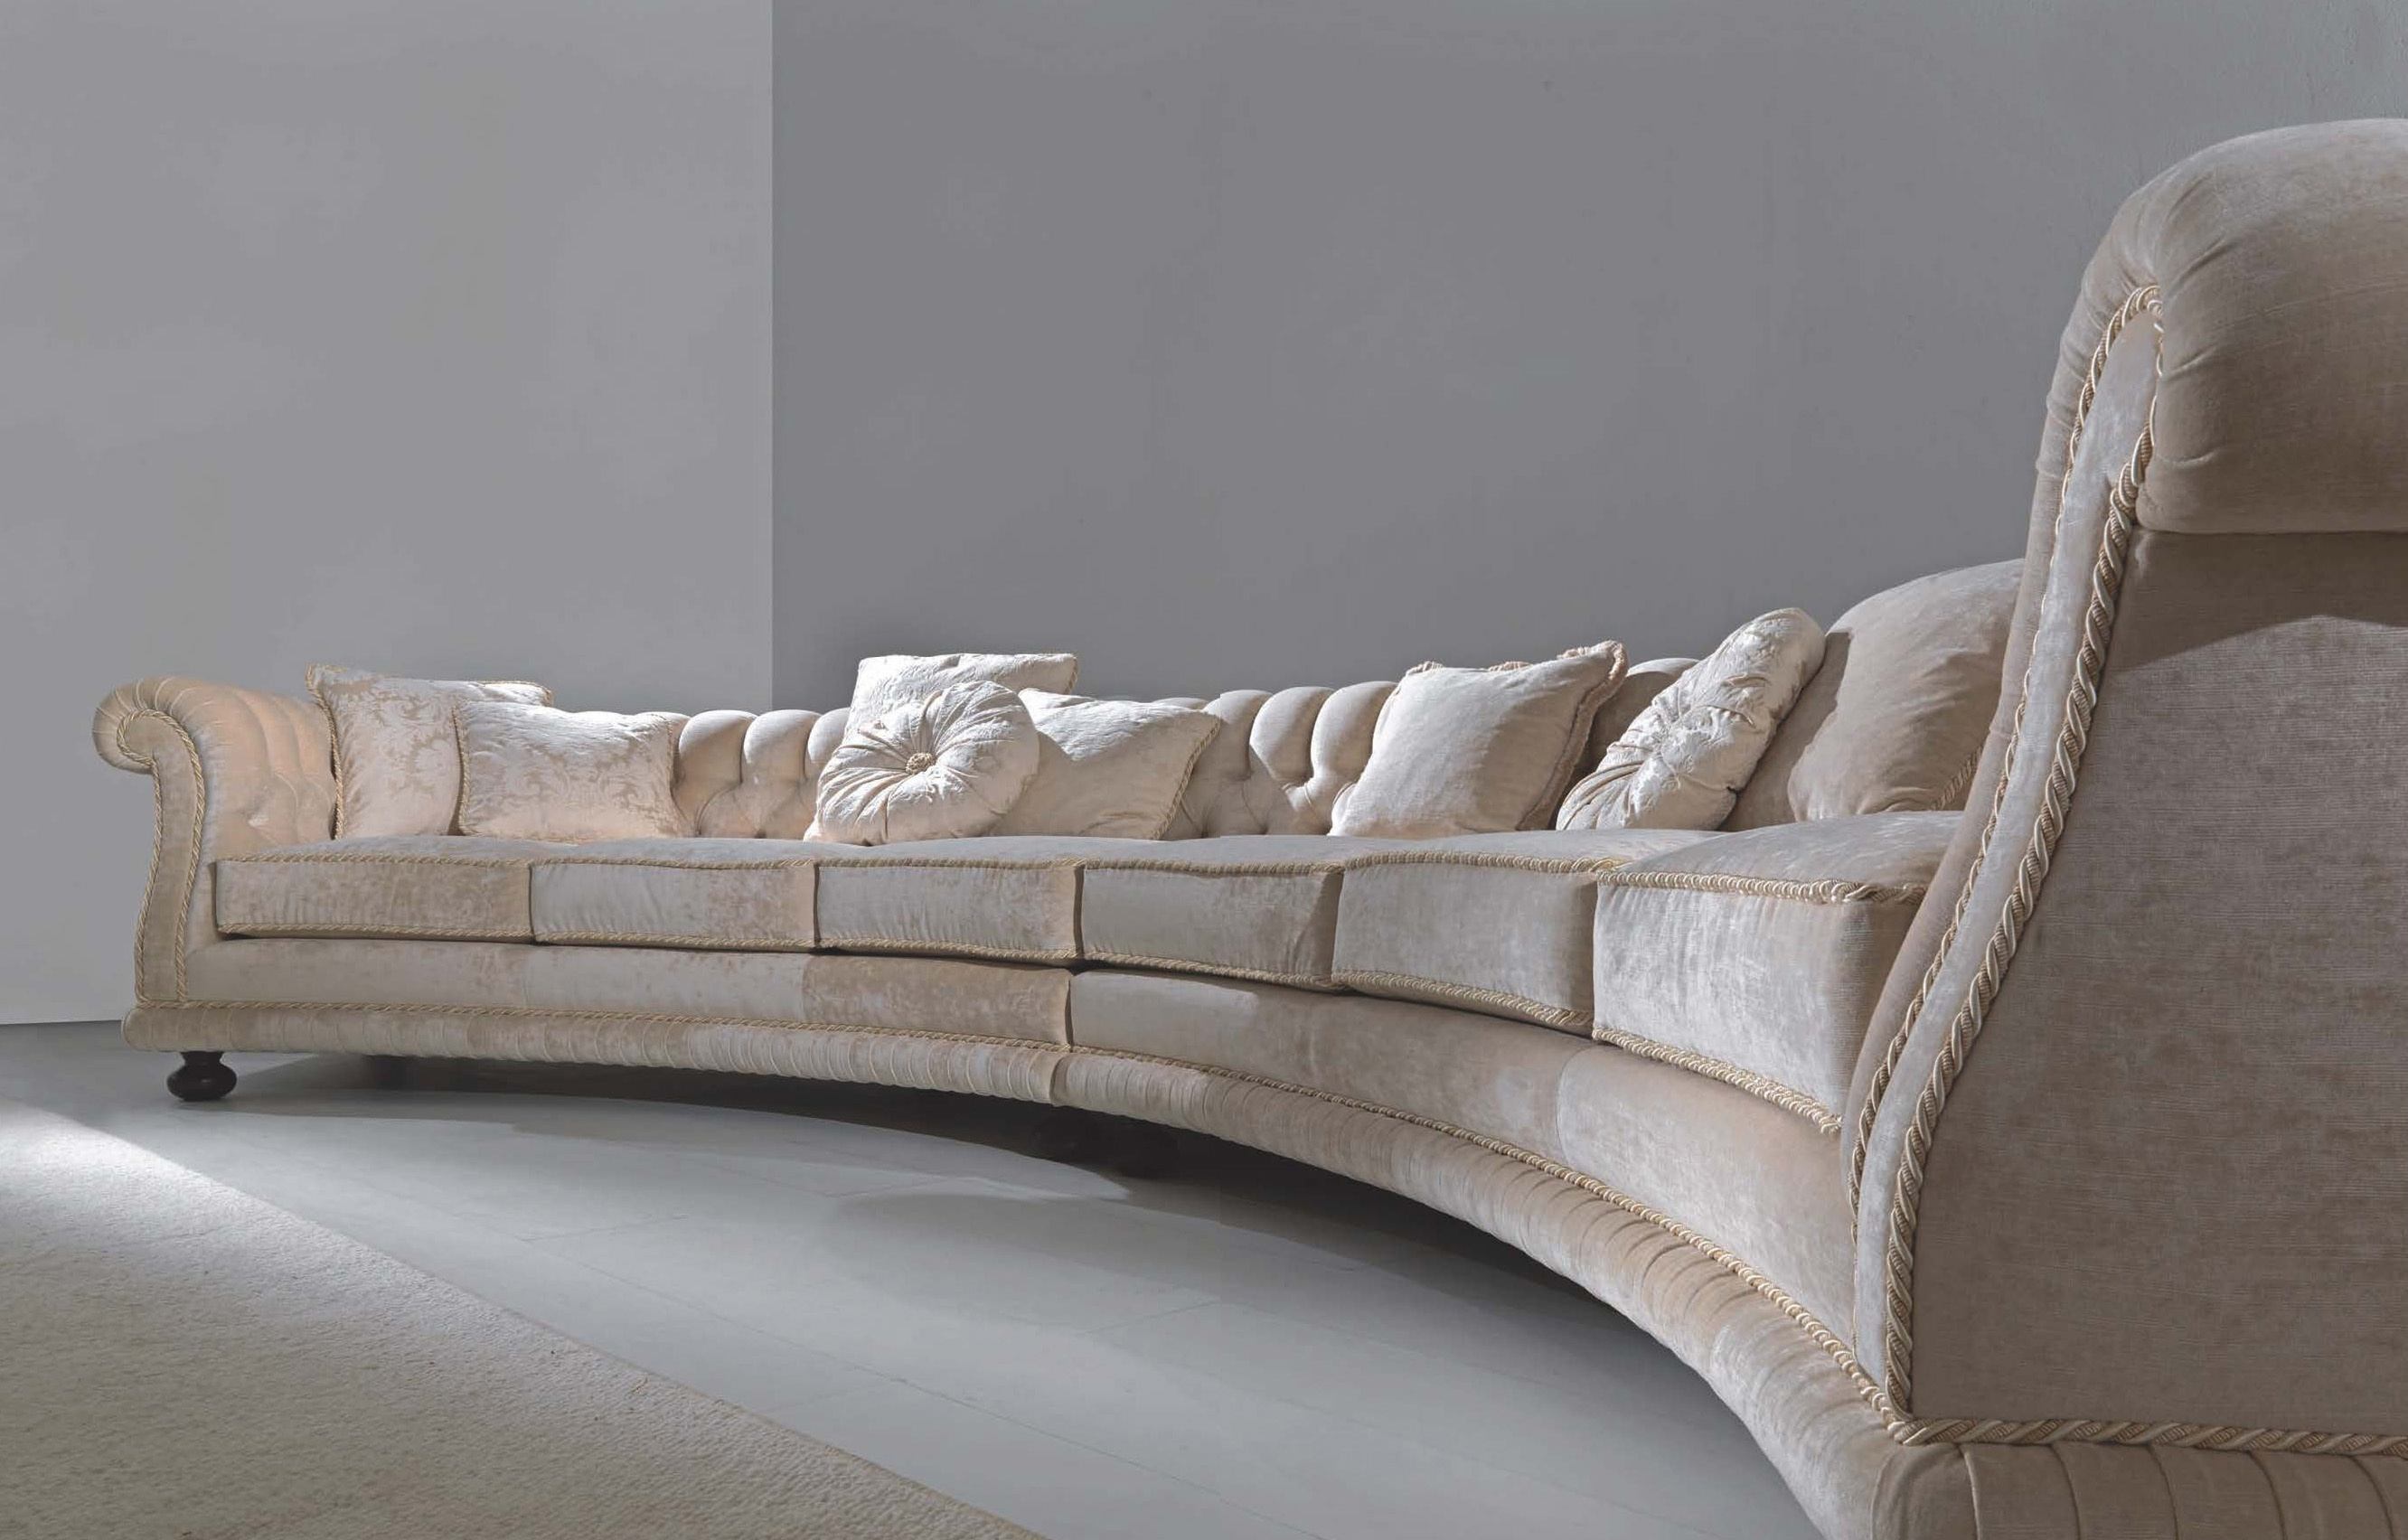 Semi Circular Sofa Versailles Asnaghi Made In Italy Luxury Furniture Mr